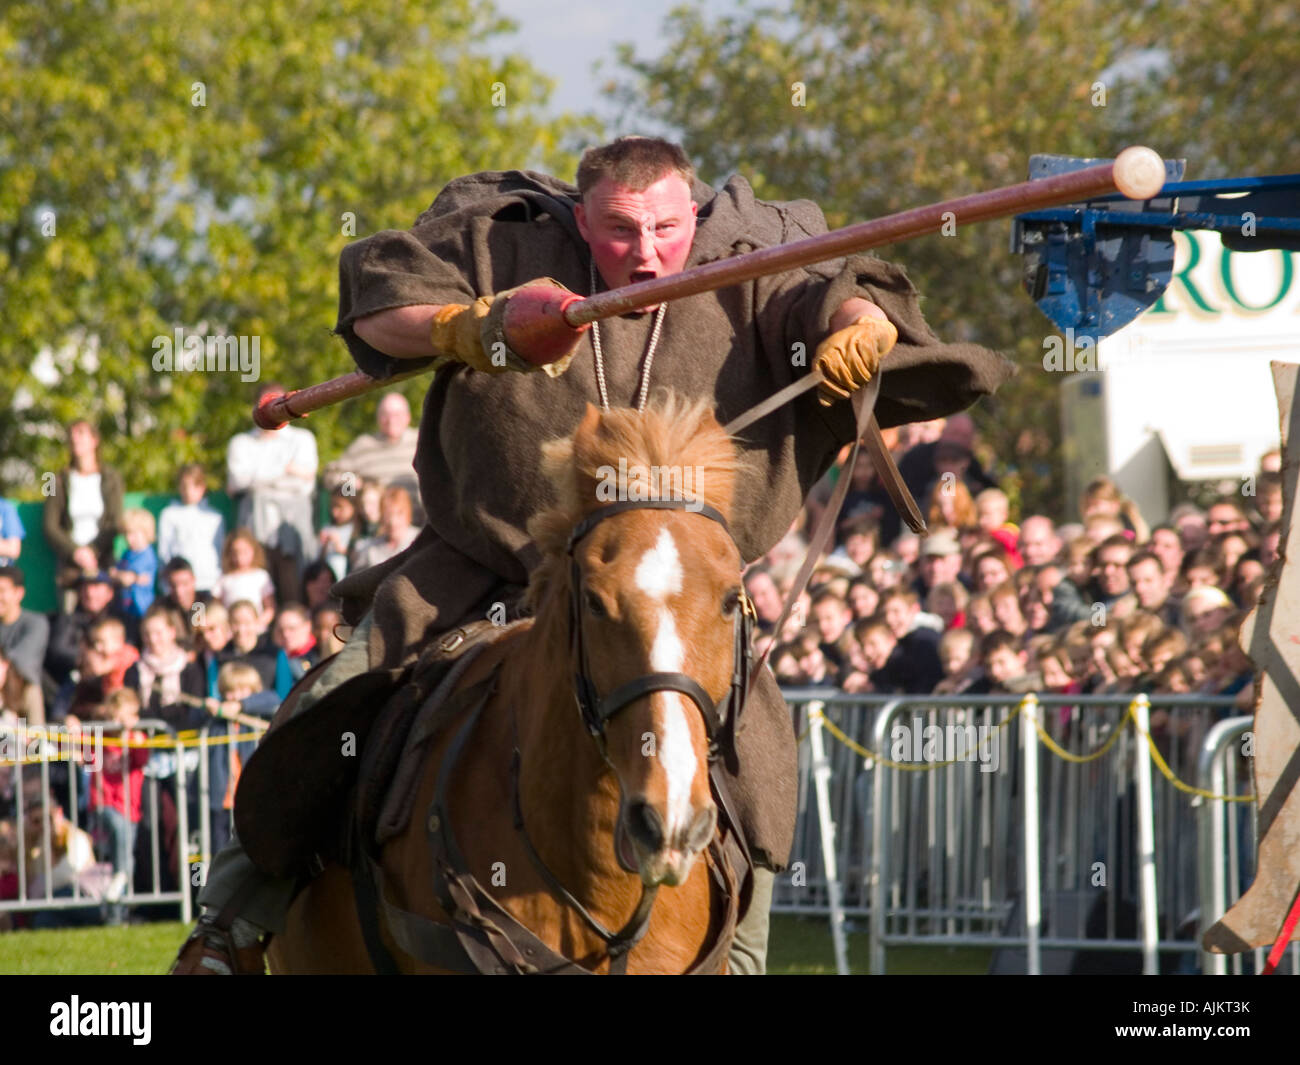 Friar Tuck jousting against the Sheriff of Nottingham during the Robin Hood Pageant at Nottingham Castle 2007 - Stock Image